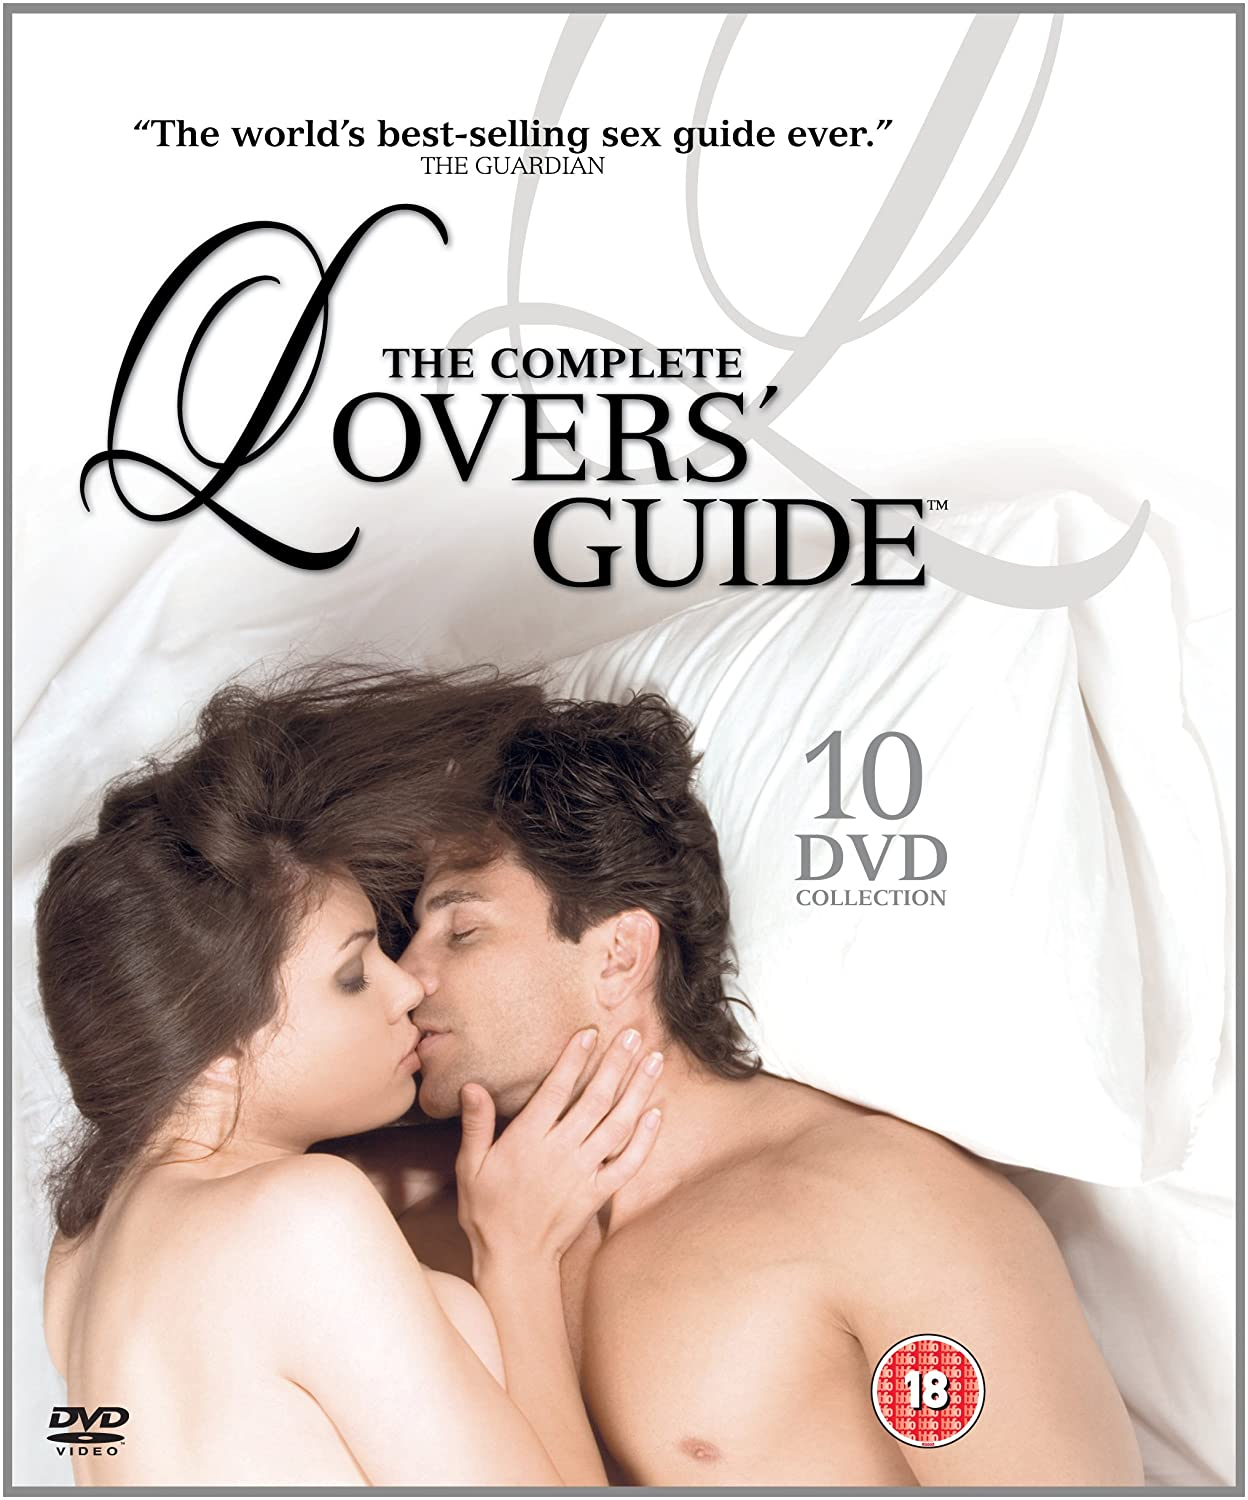 The Complete Lovers Guide Collection [DVD]: Amazon.co.uk: DVD & Blu-ray